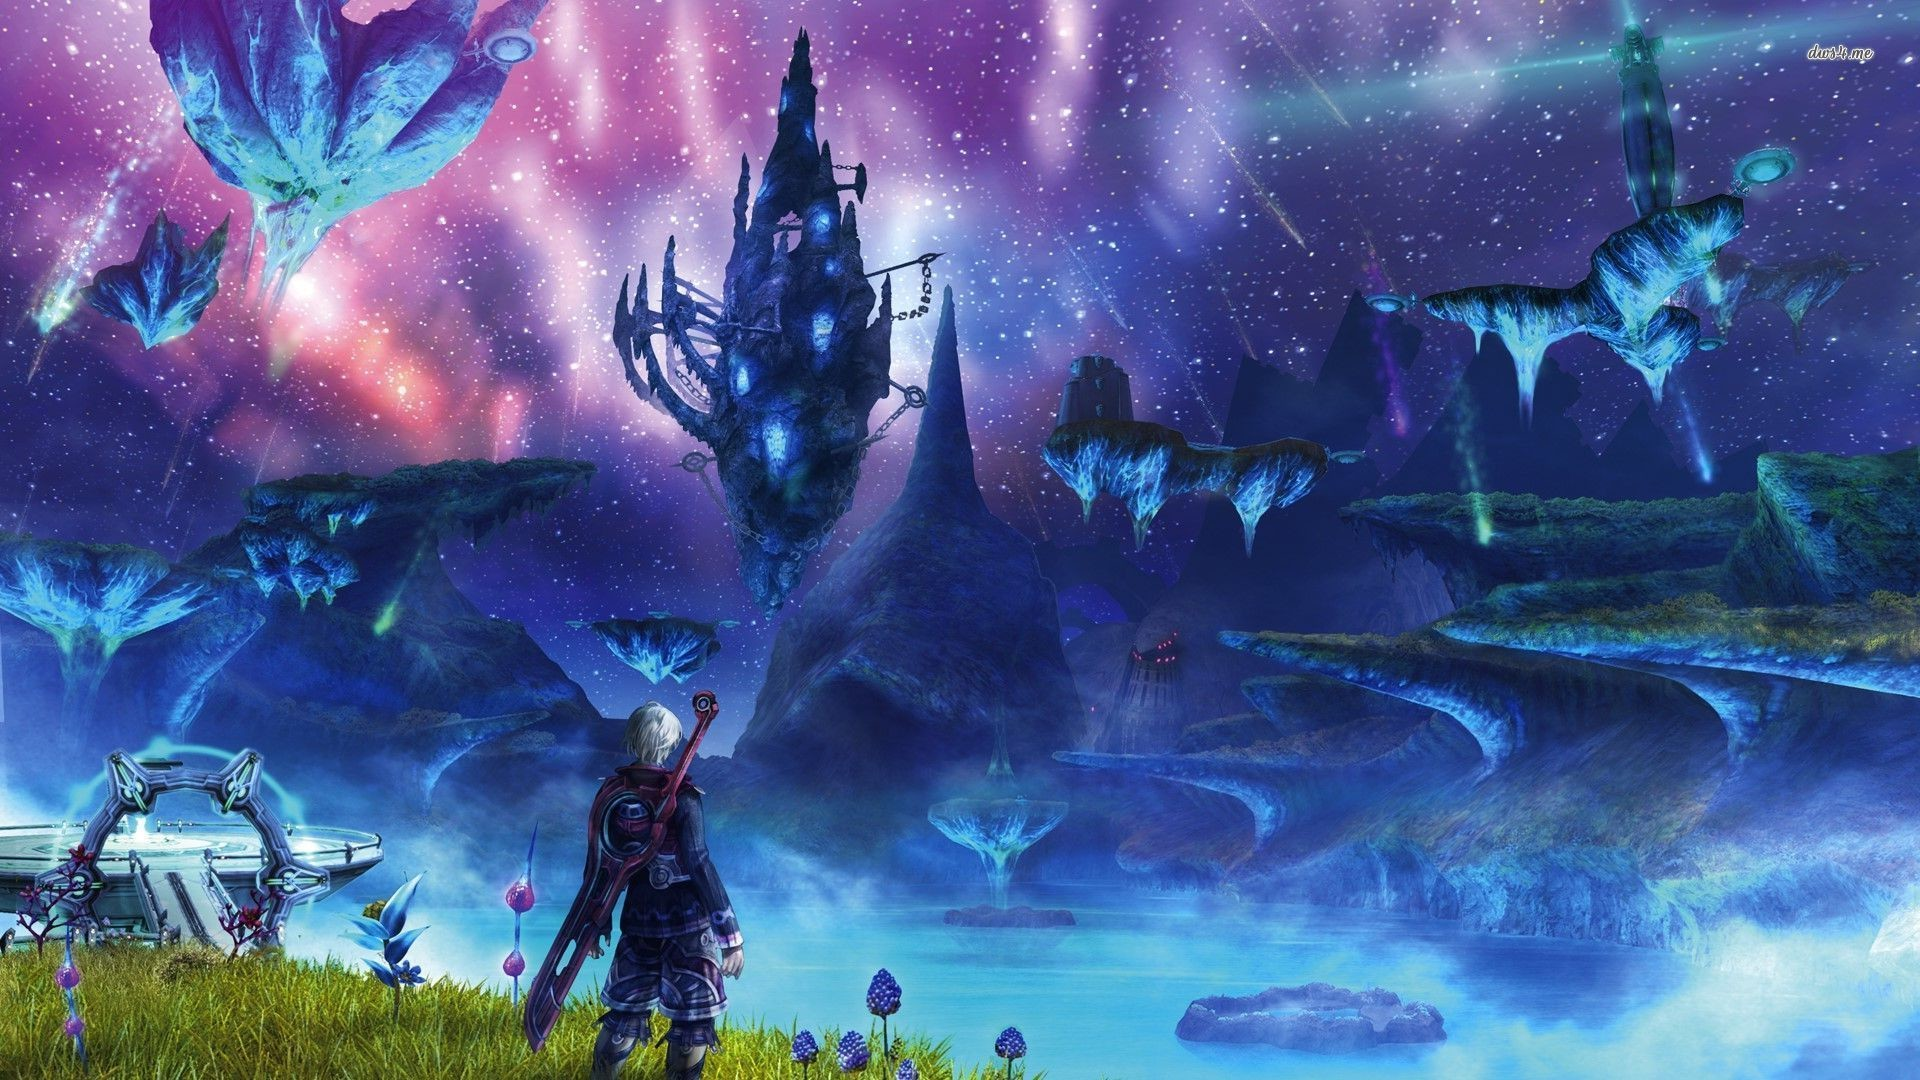 Res: 1920x1080, Xenoblade Chronicles HD Wallpapers 8 - 1920 X 1080